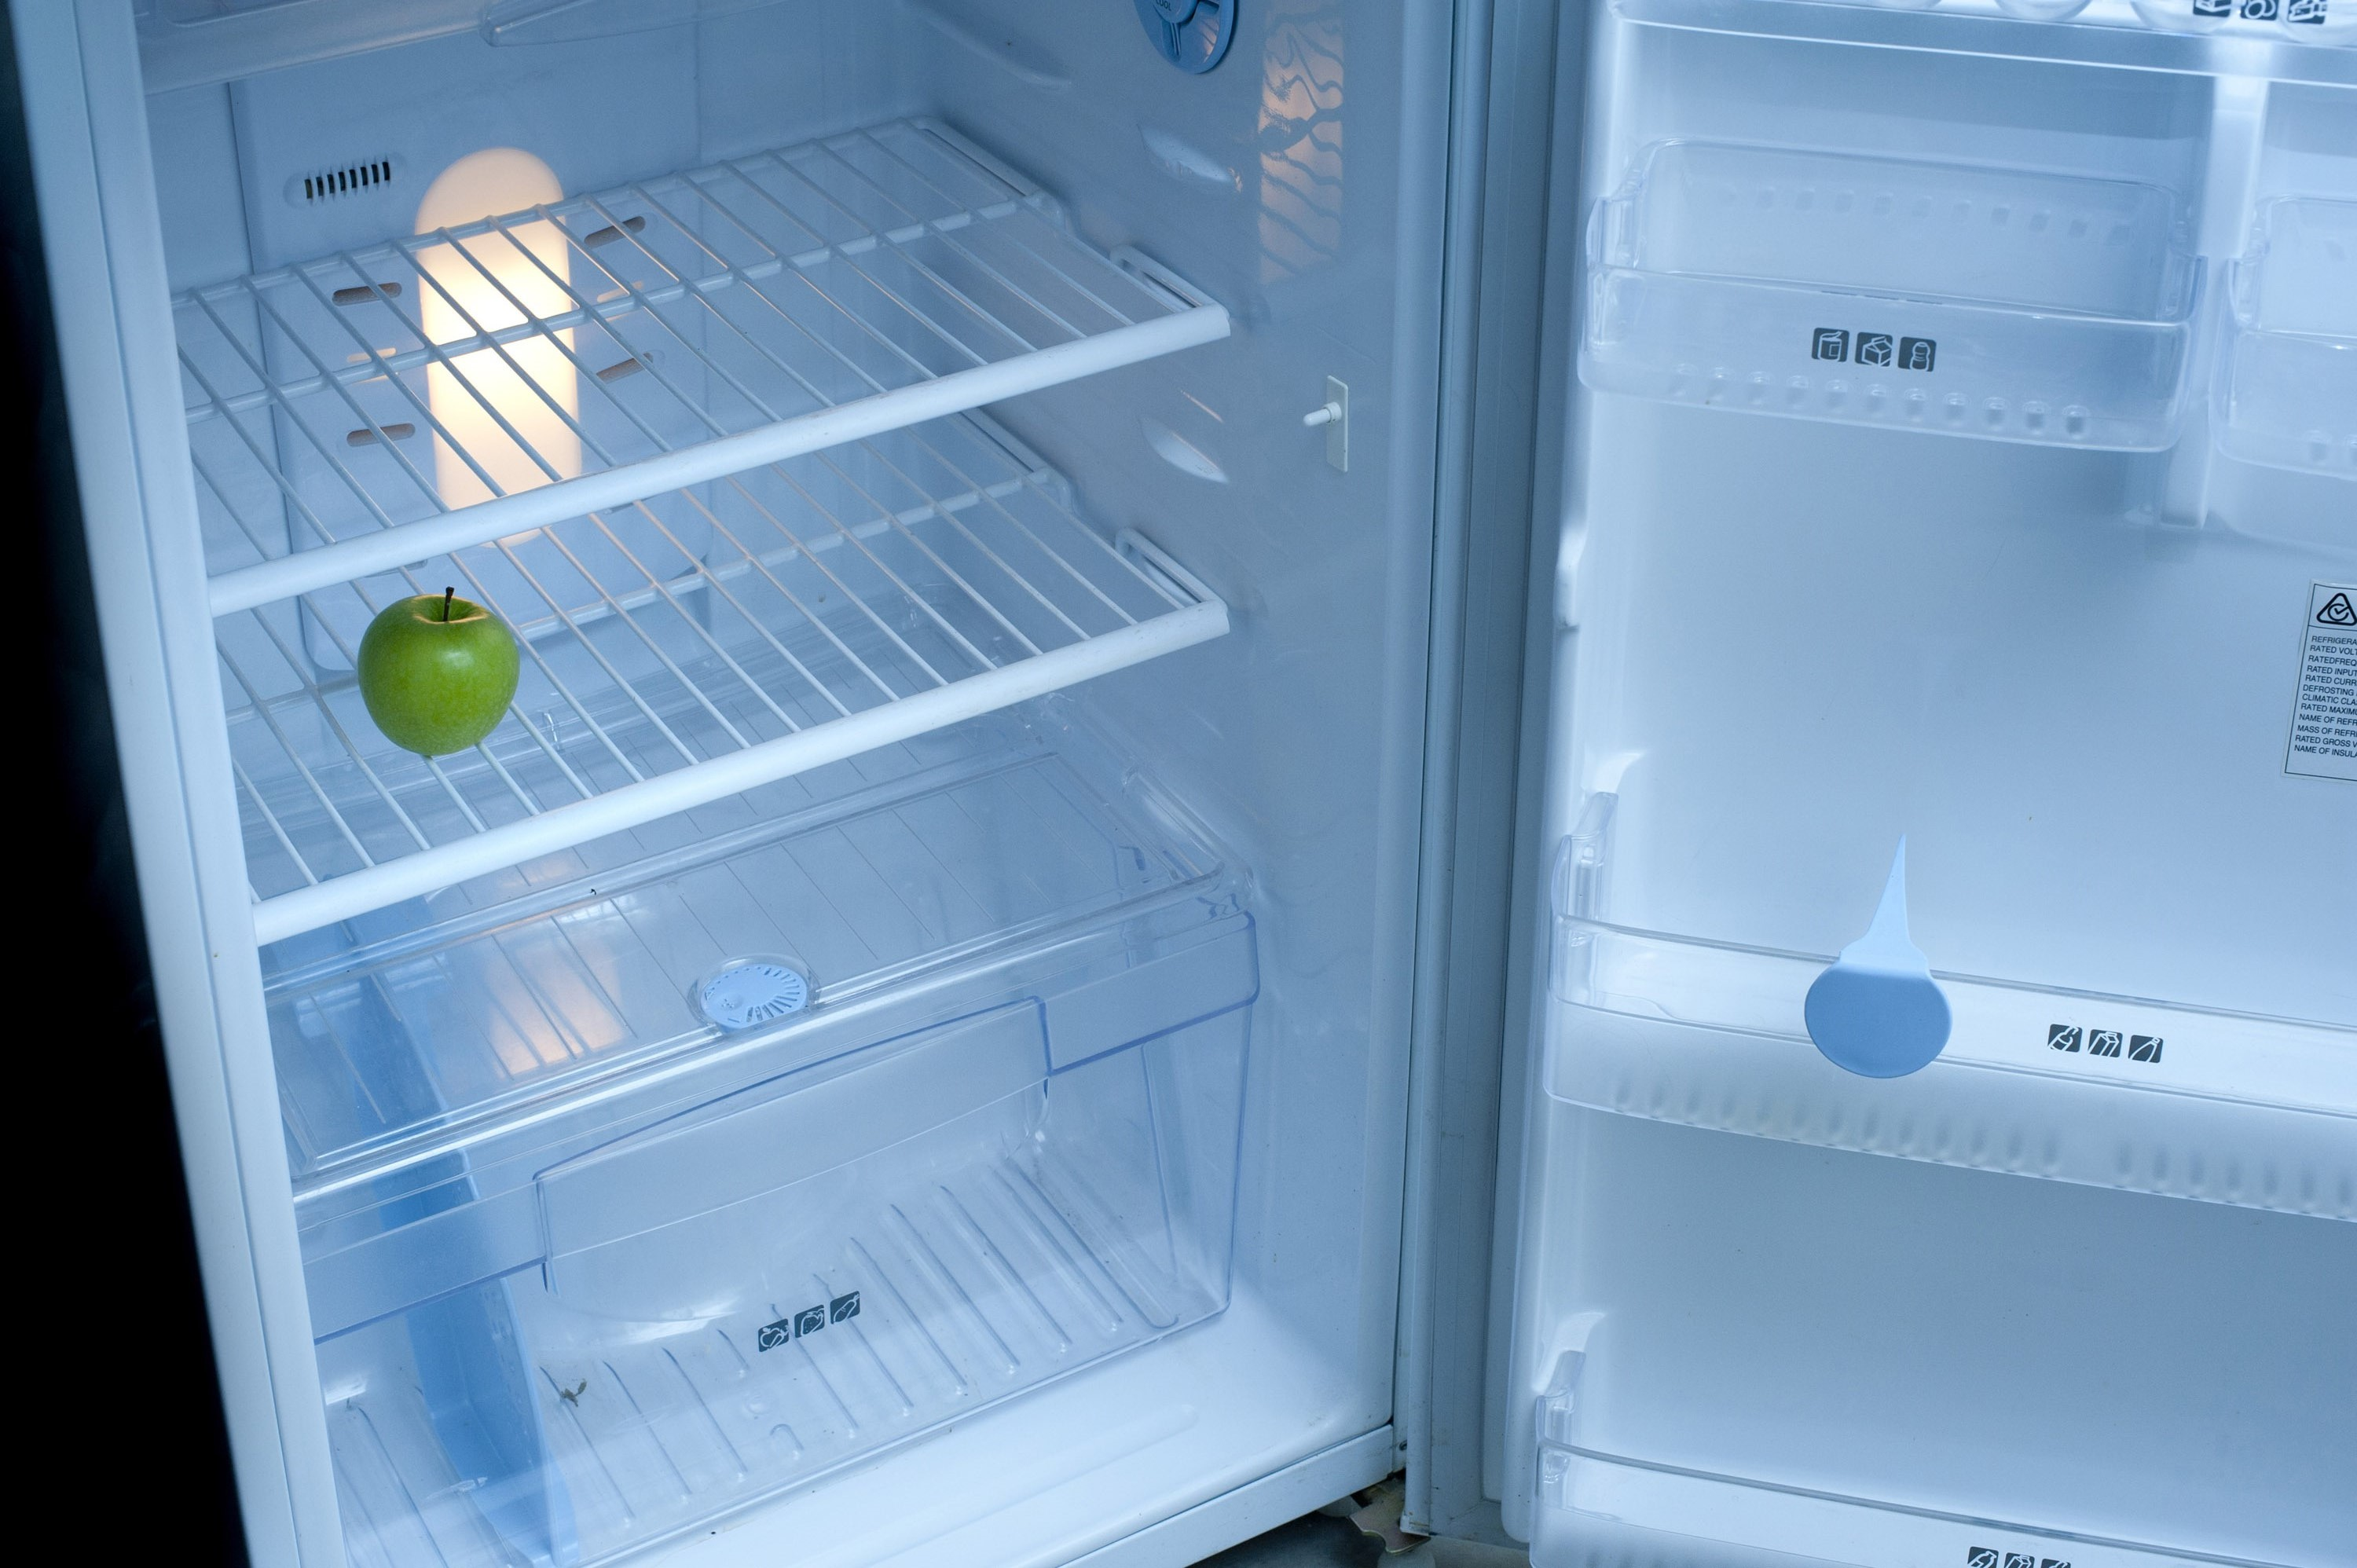 Free image of Only one apple left in the fridge